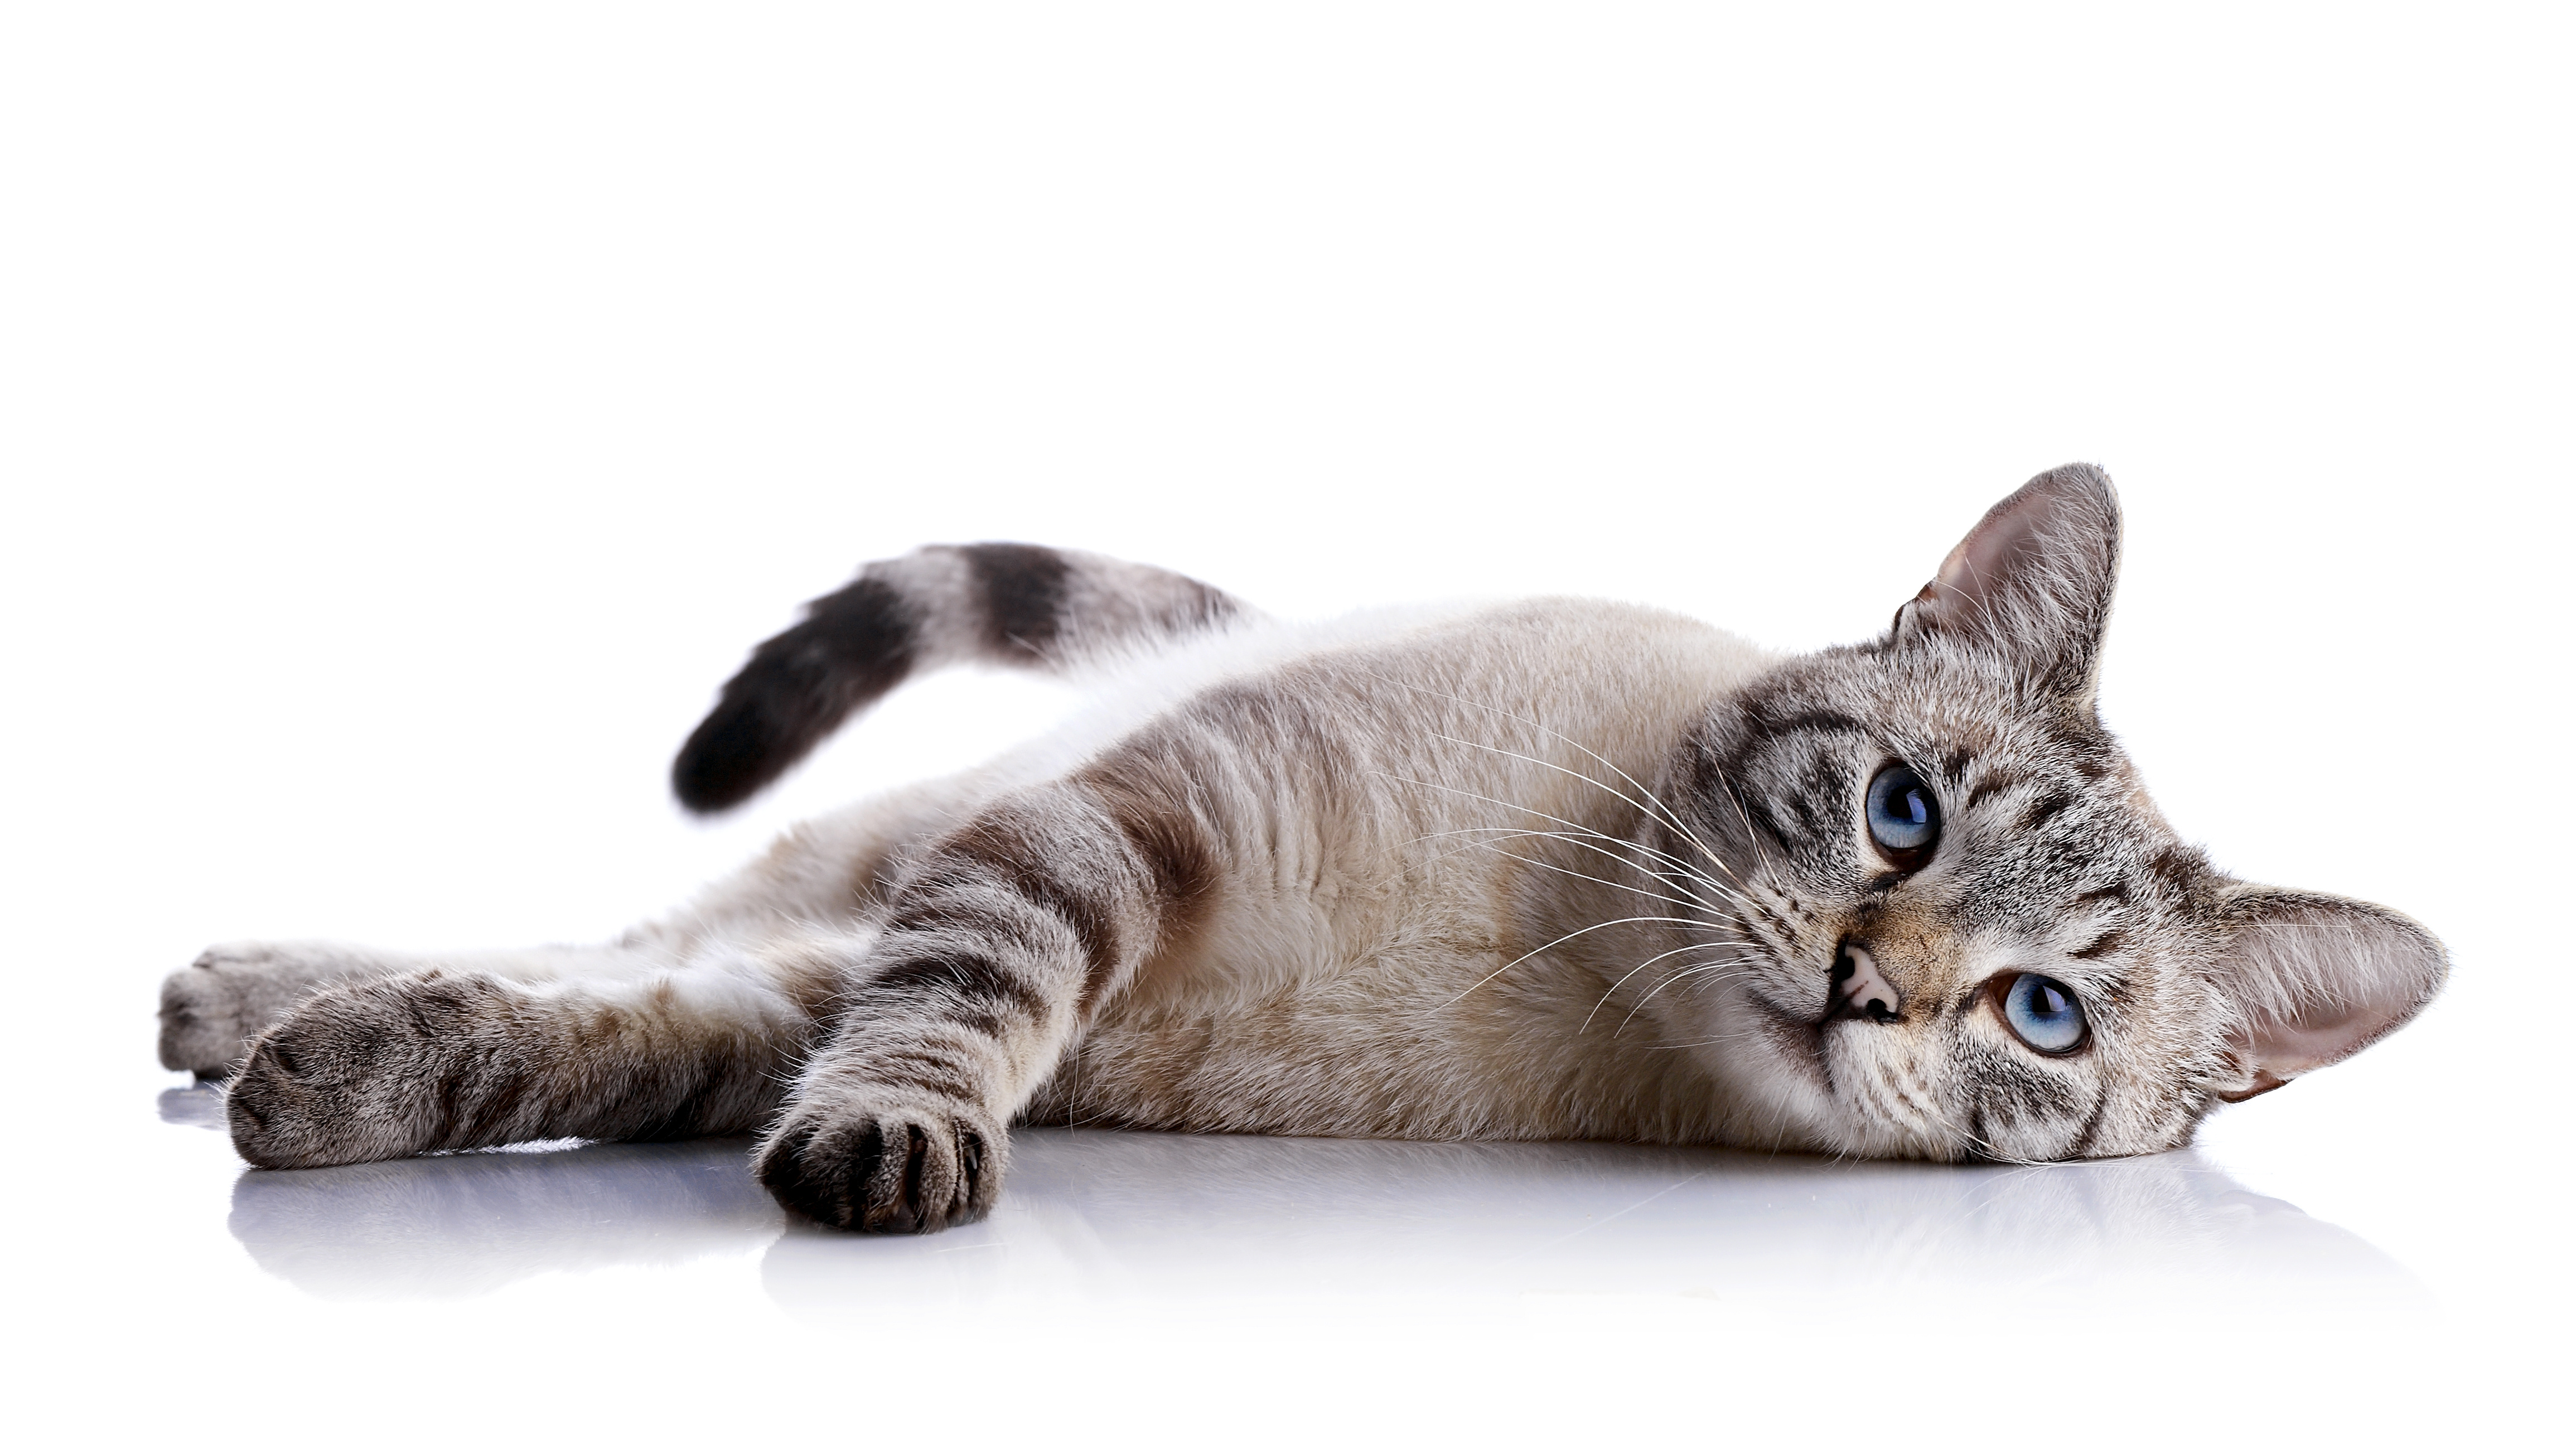 The striped blue-eyed cat lies on a white background.